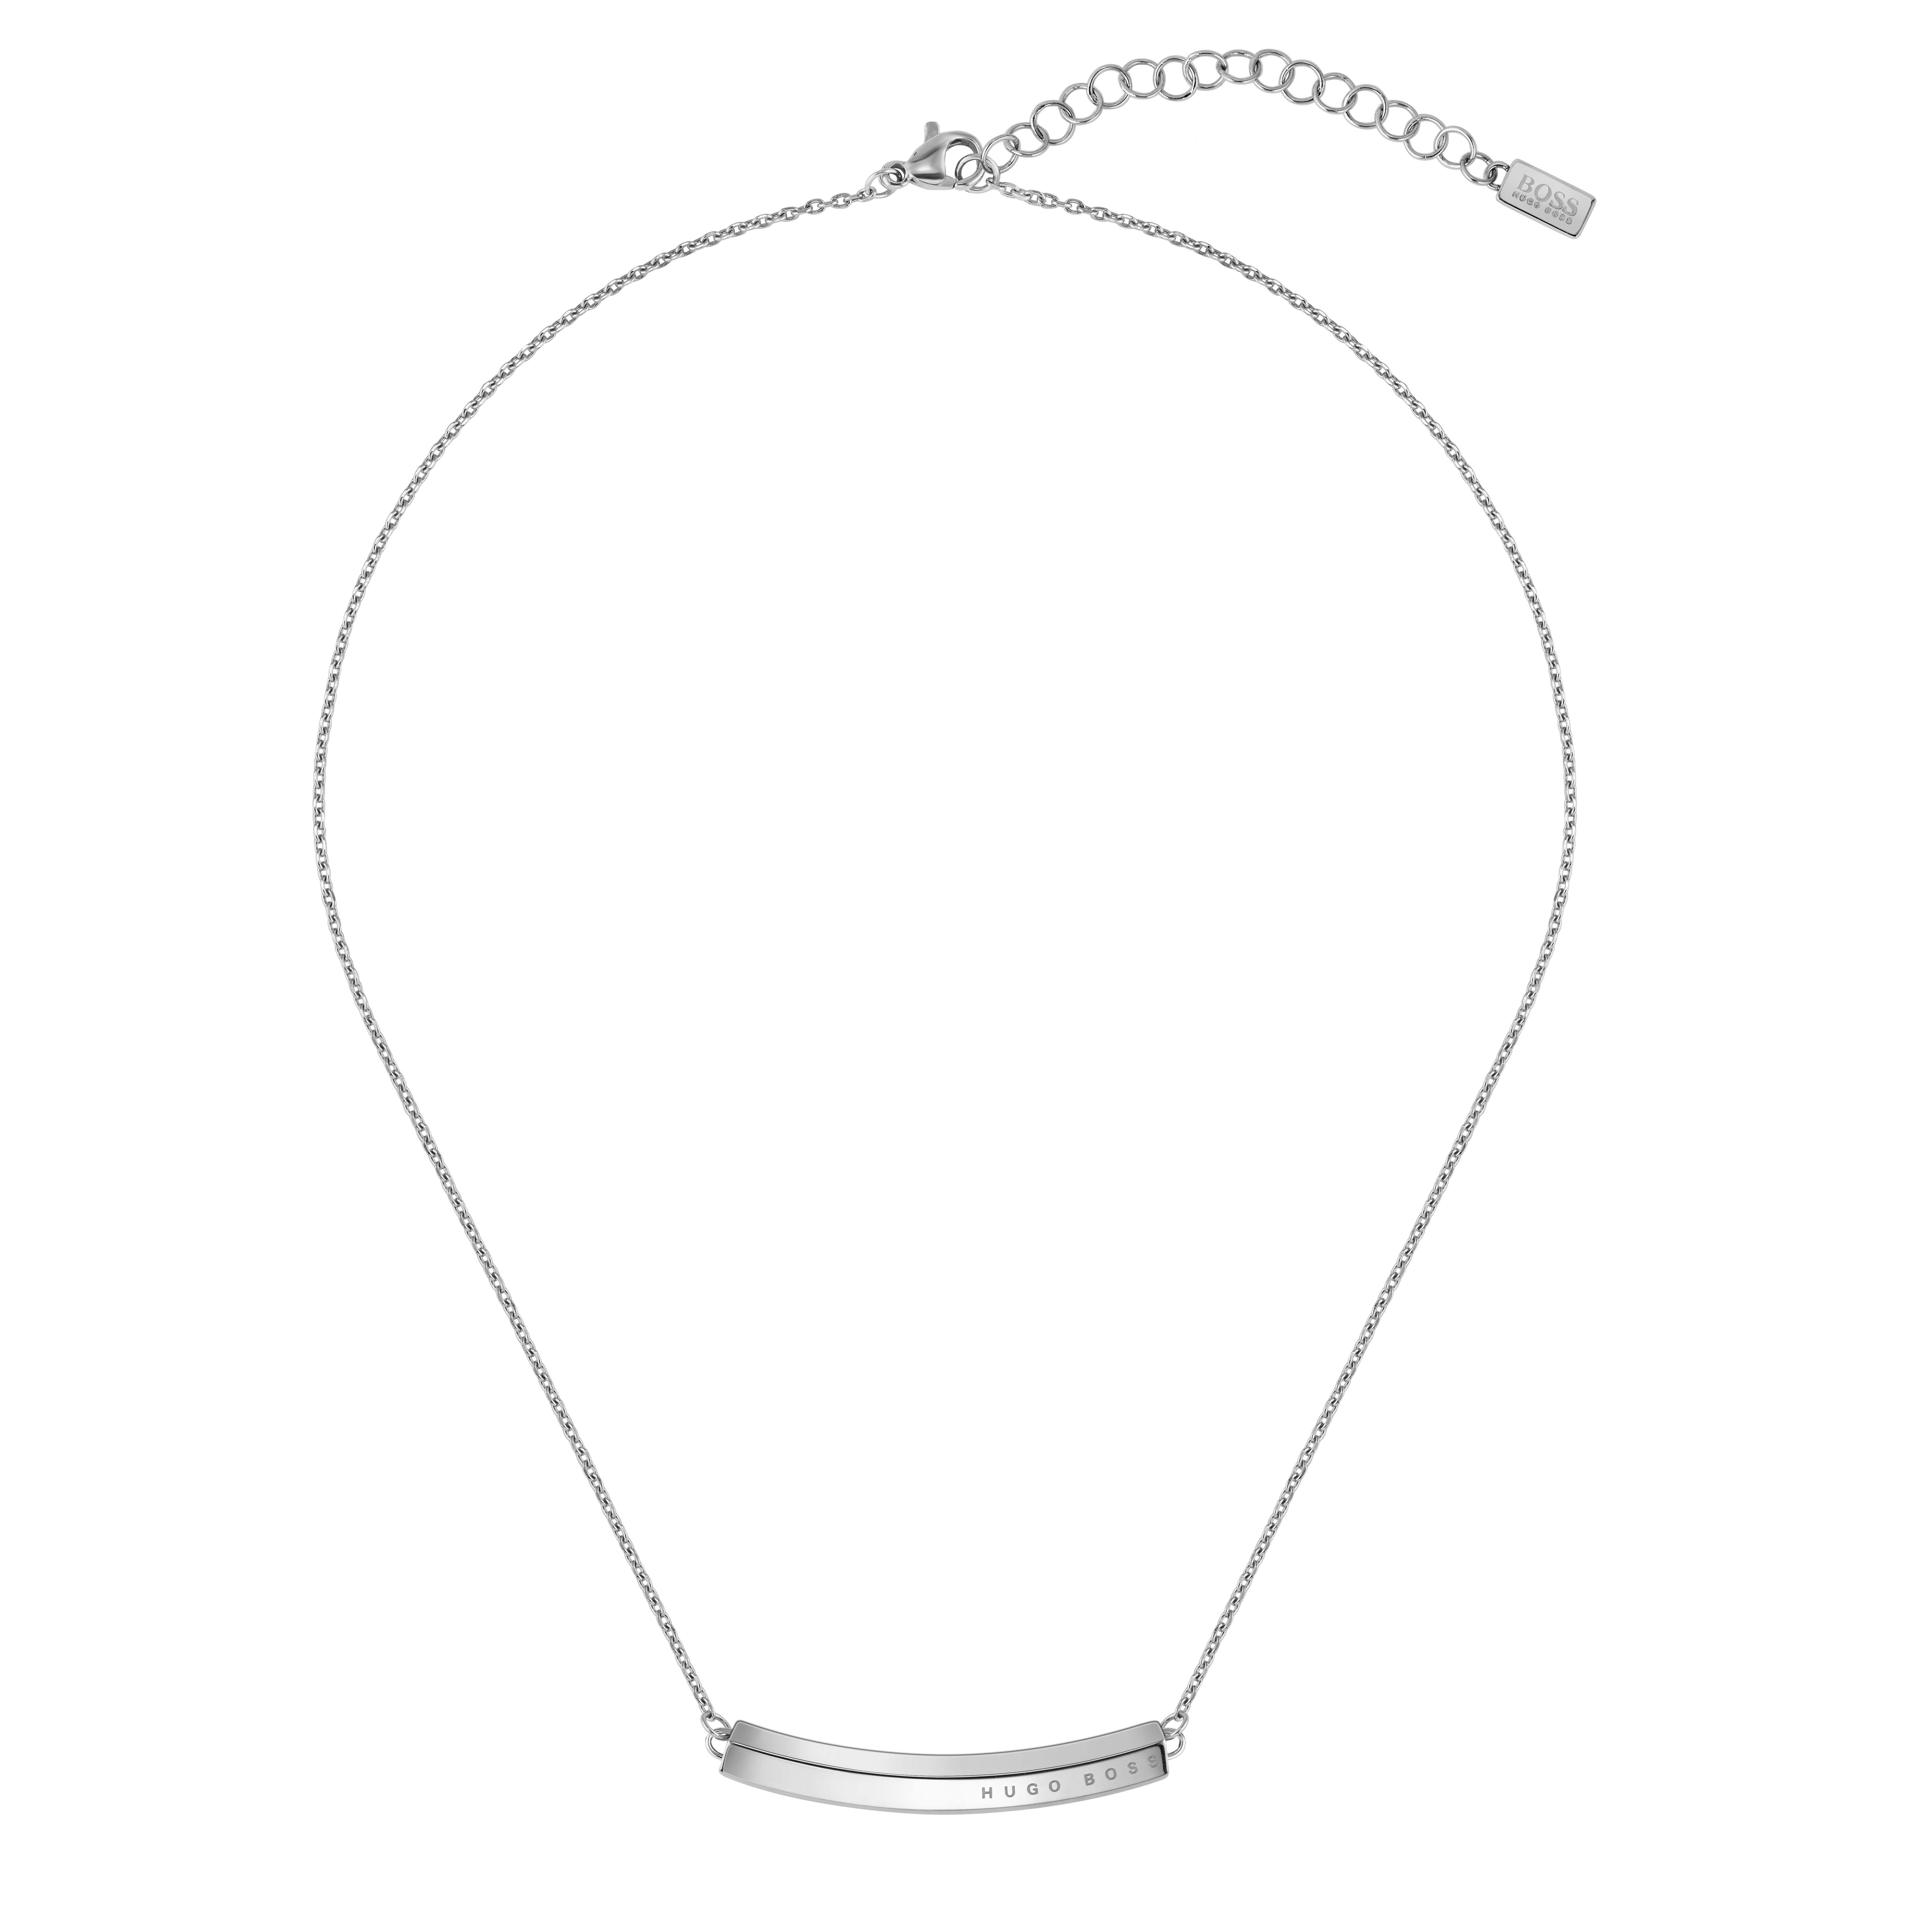 BOSS Insignia Necklace